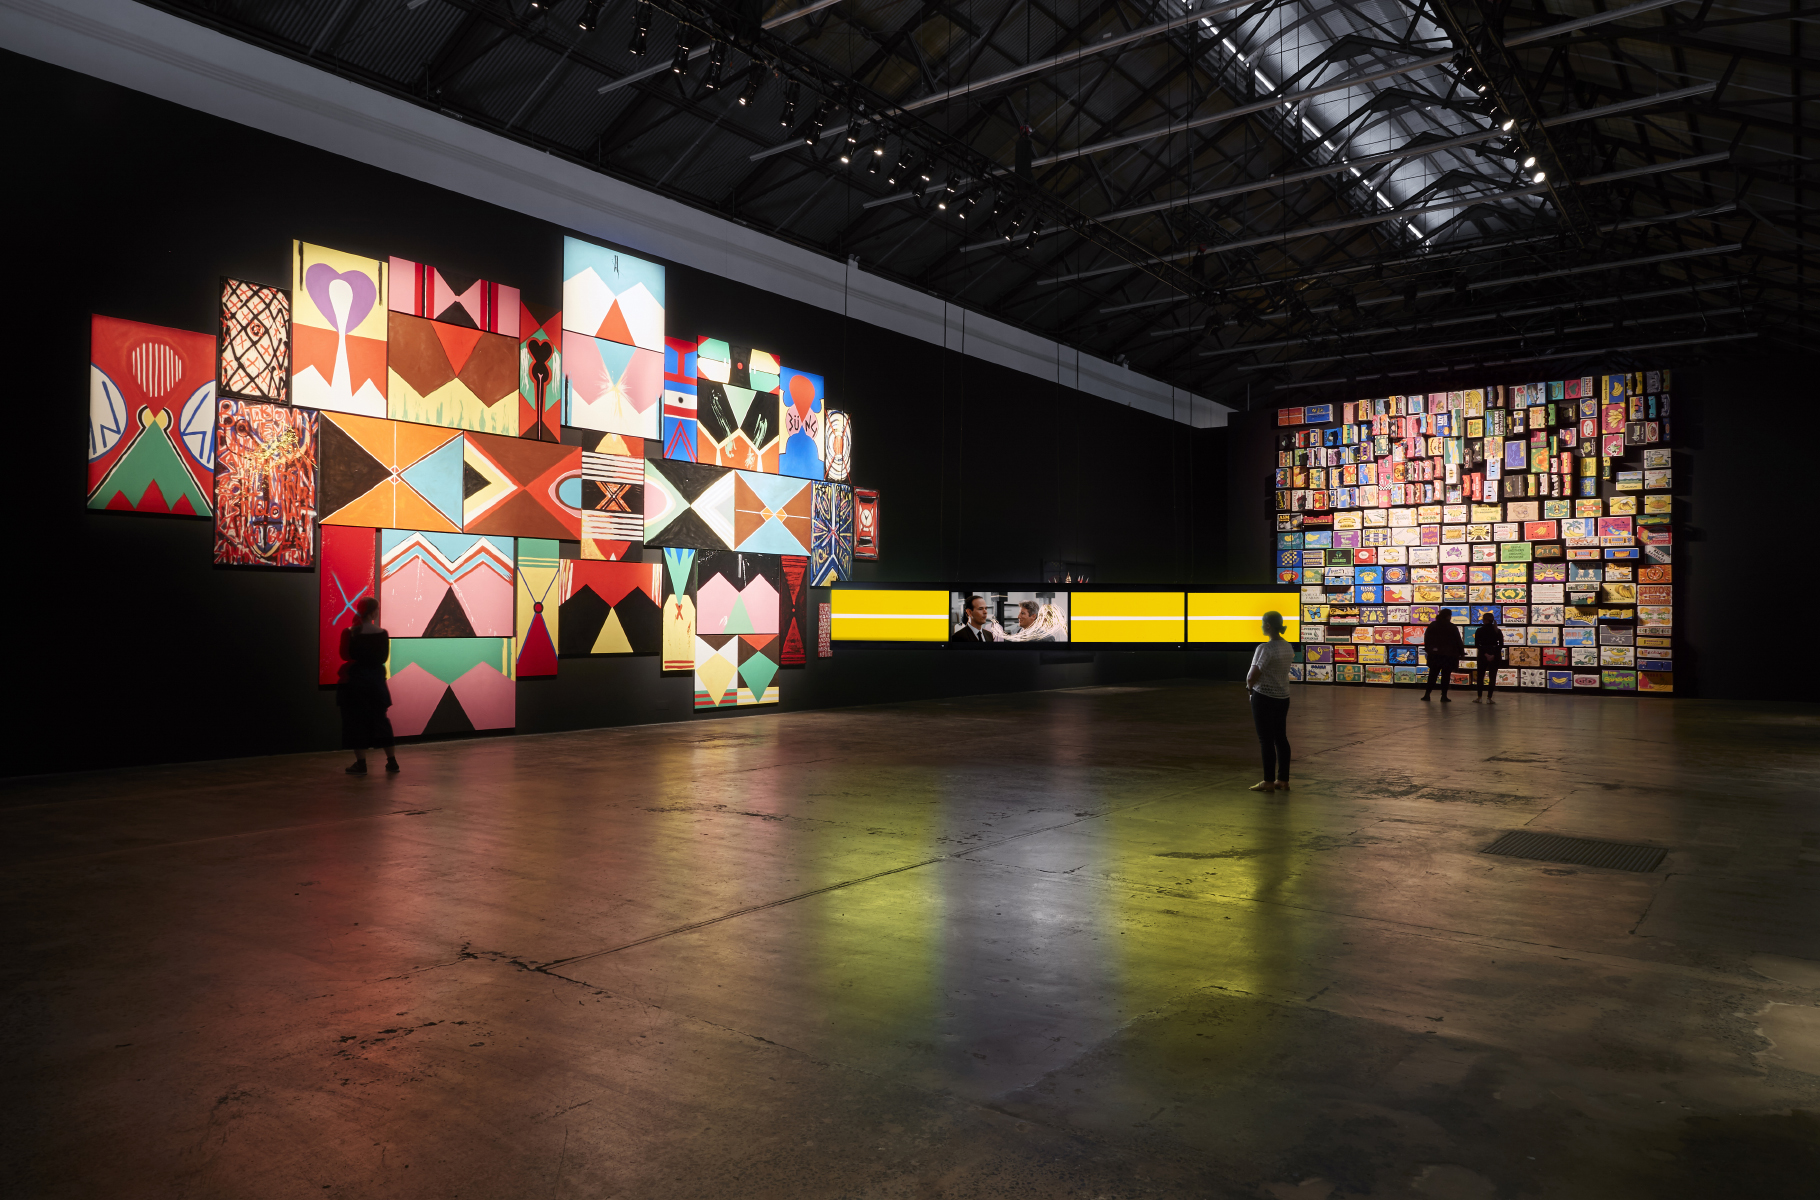 Coming Attractions (2017-2019), Exhibition view of 'The National' by Zan Wimberley, courtesy of Carriageworks